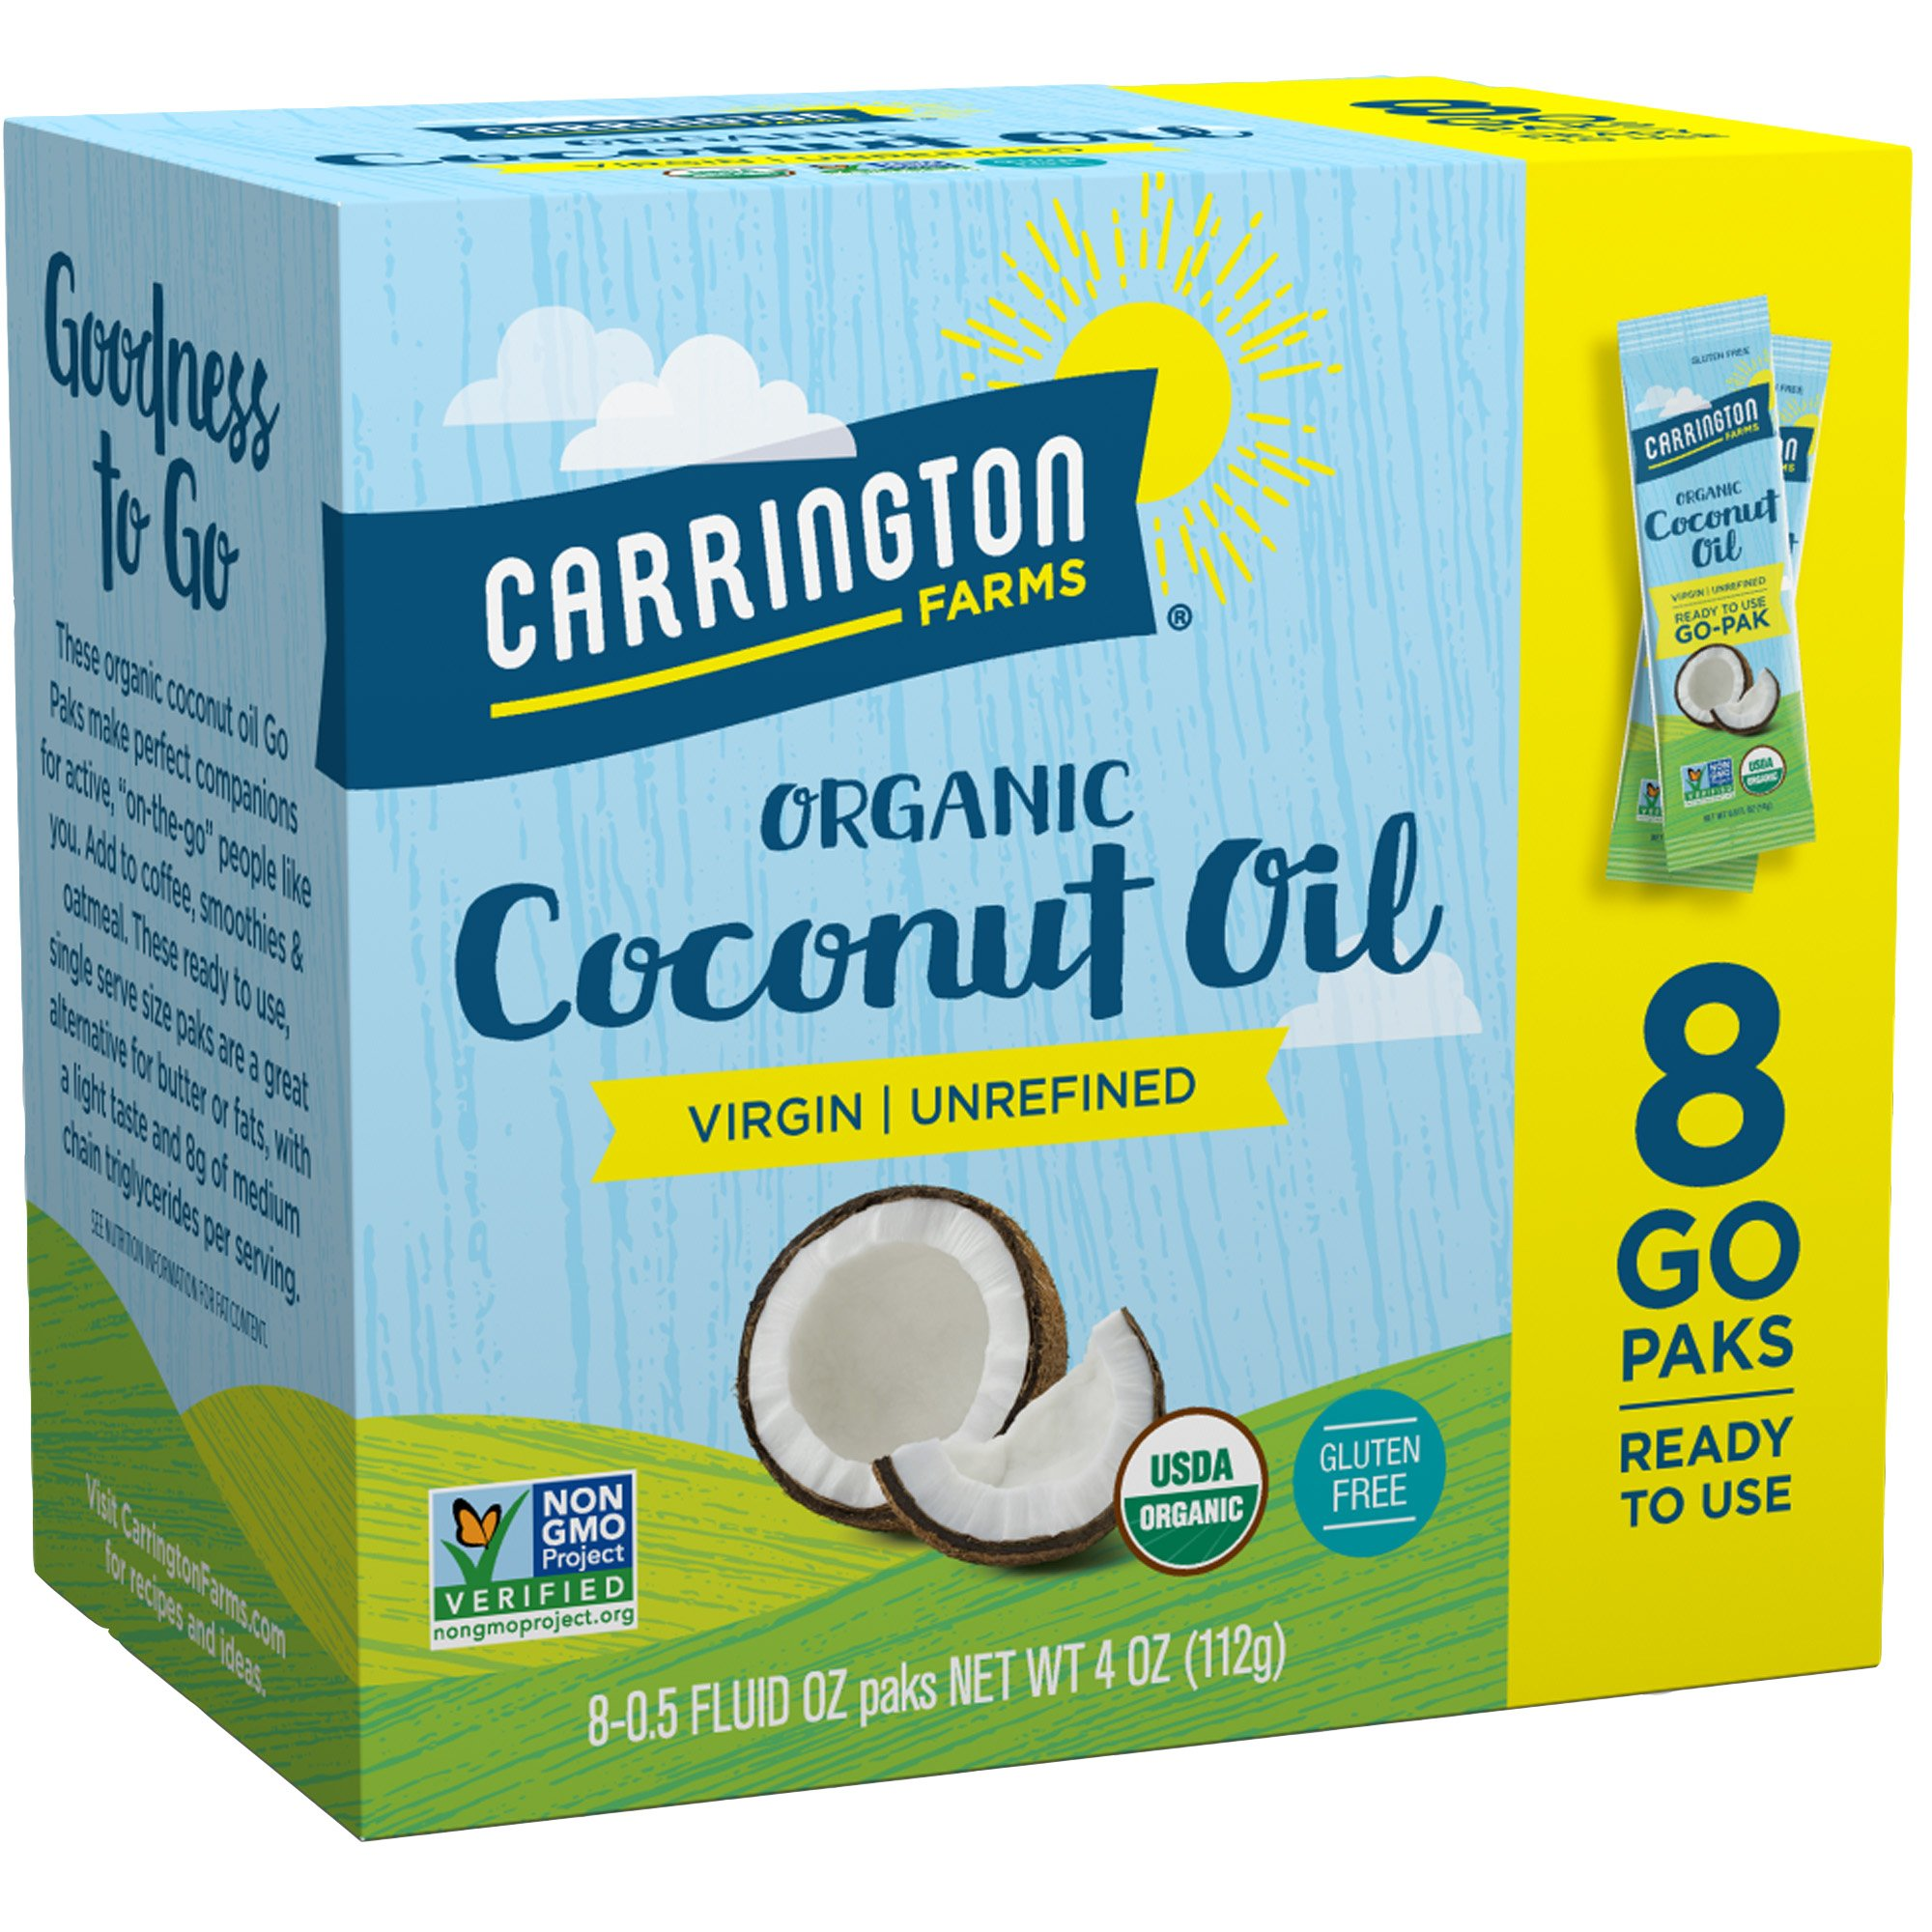 Carrington Farms Gluten Free, Unrefined, Cold Pressed, Virgin Organic Coconut Oil, 8 Packets (Pack of 6), Coconut Oil For Skin & Hair Care, Cooking, & Smoothies by Carrington Farms (Image #9)